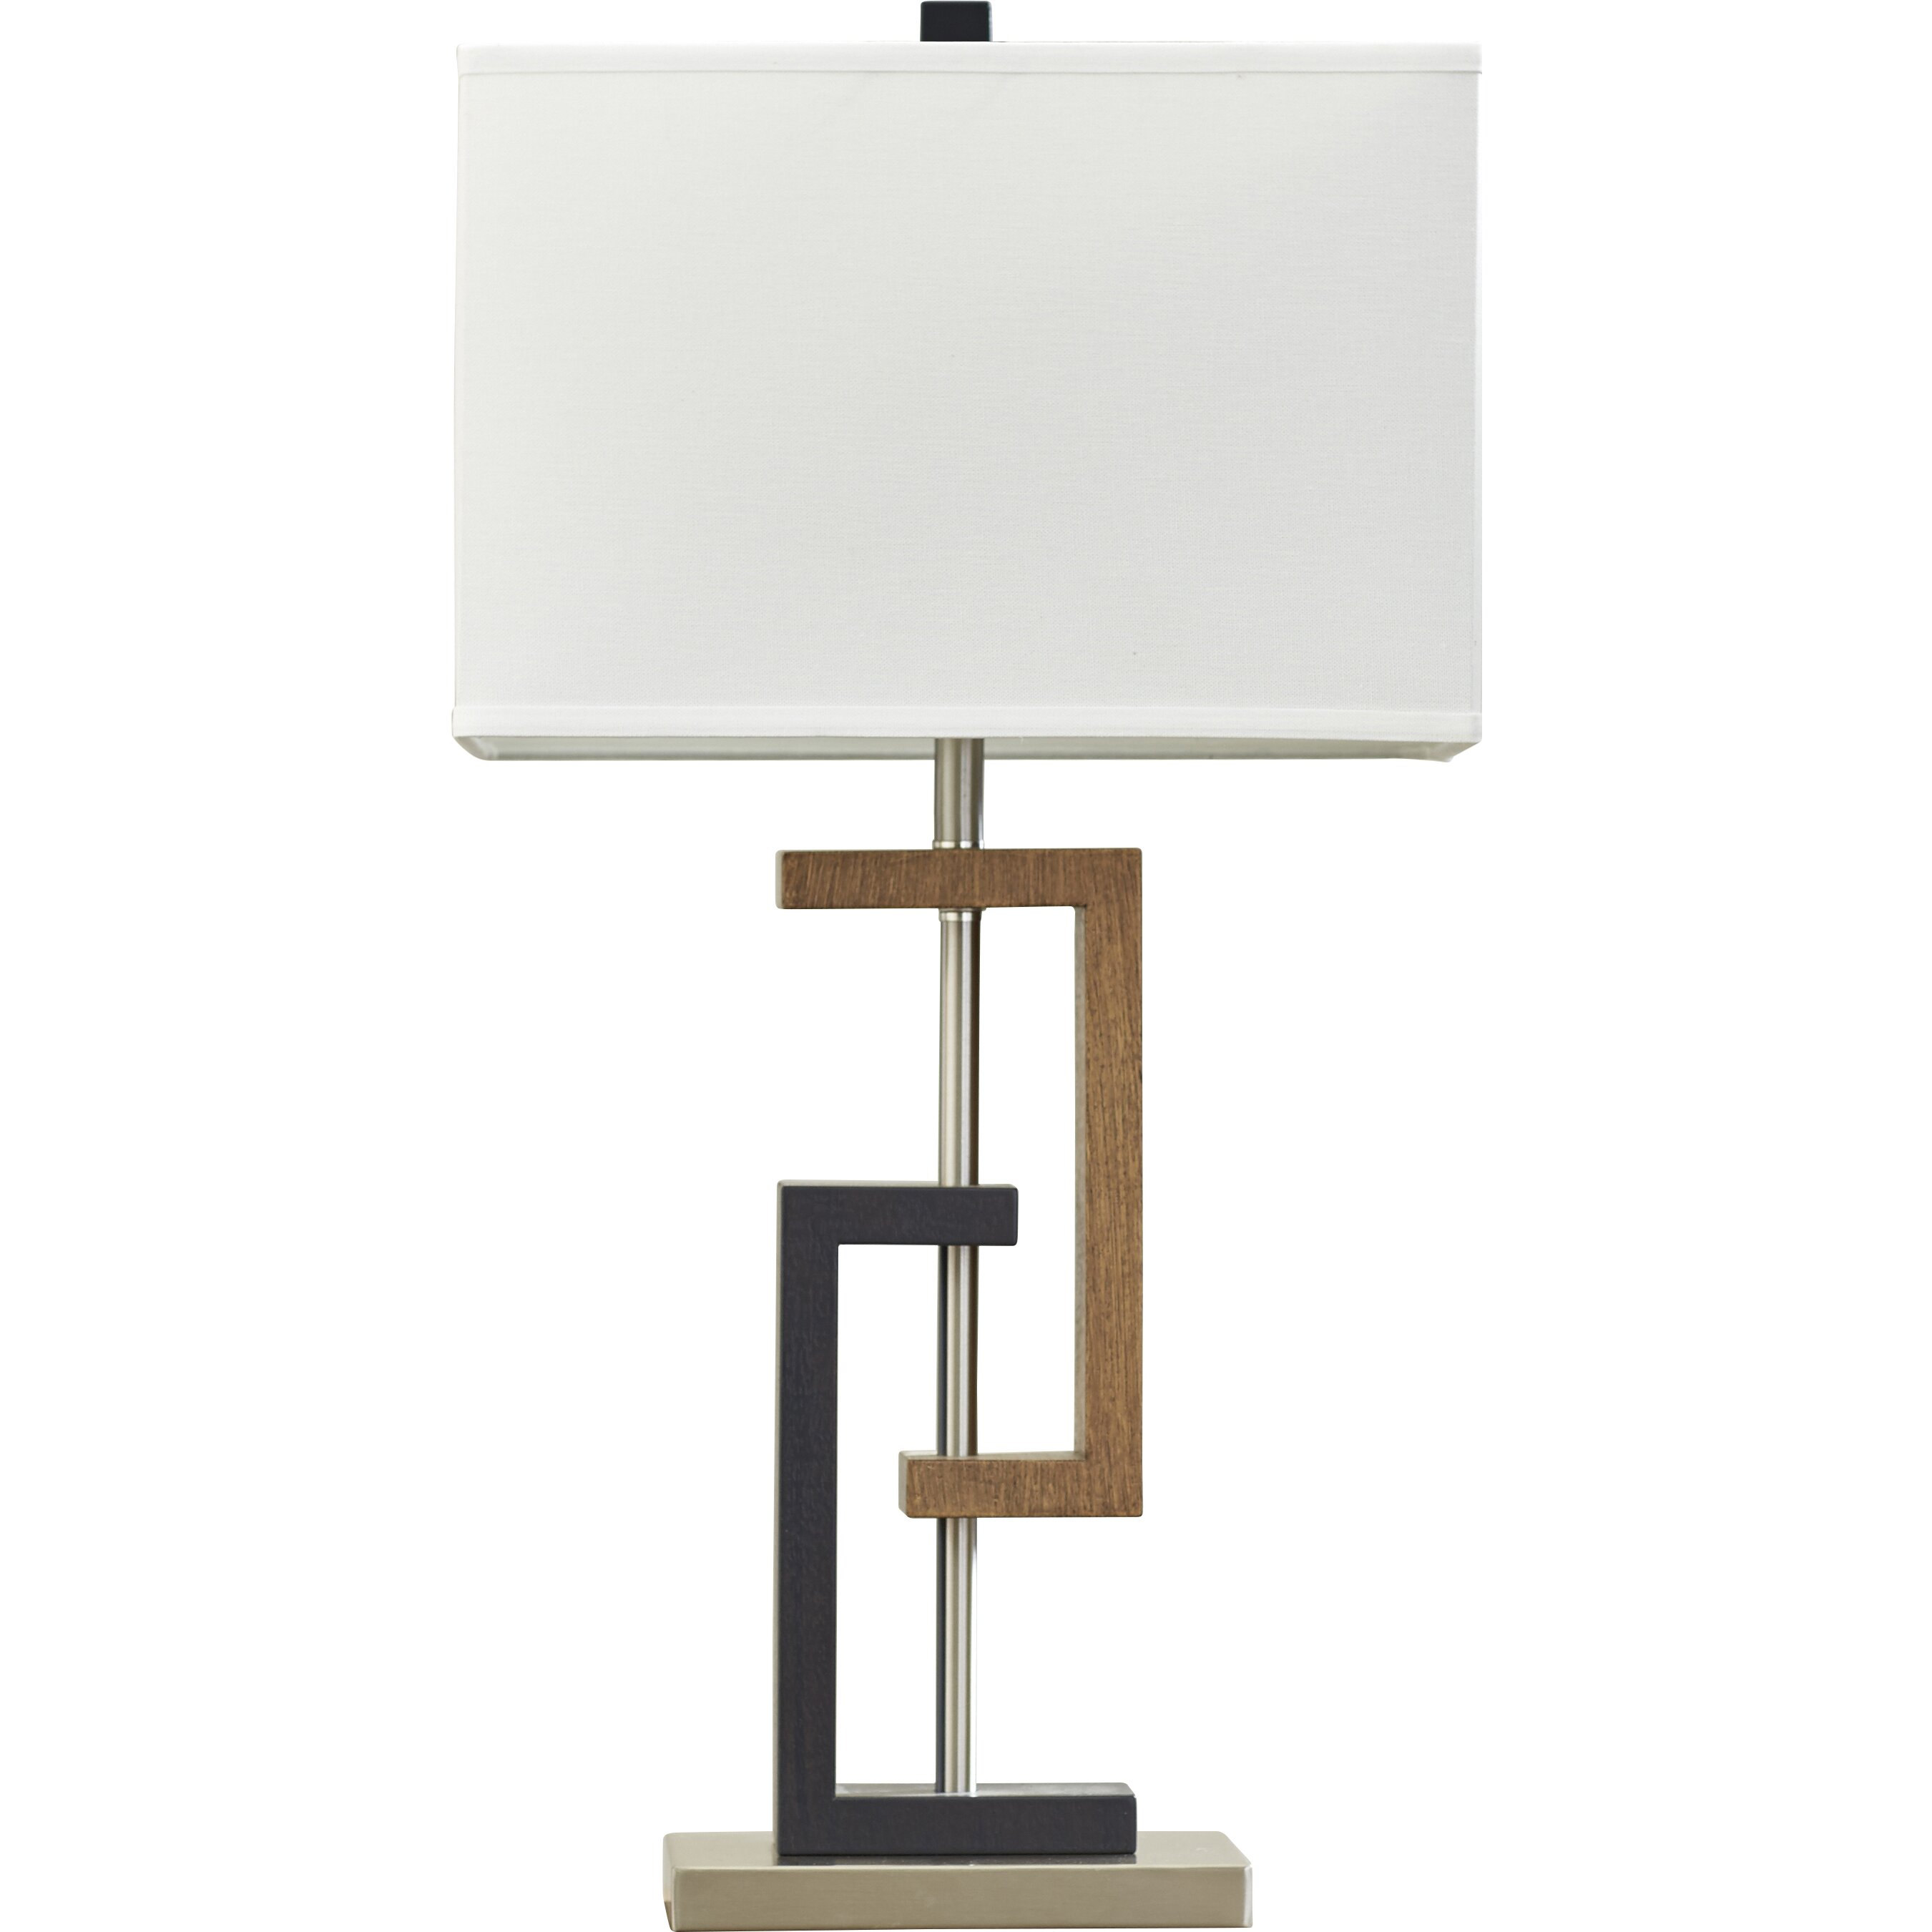 oliver h table lamp with rectangular shade reviews wa. Black Bedroom Furniture Sets. Home Design Ideas